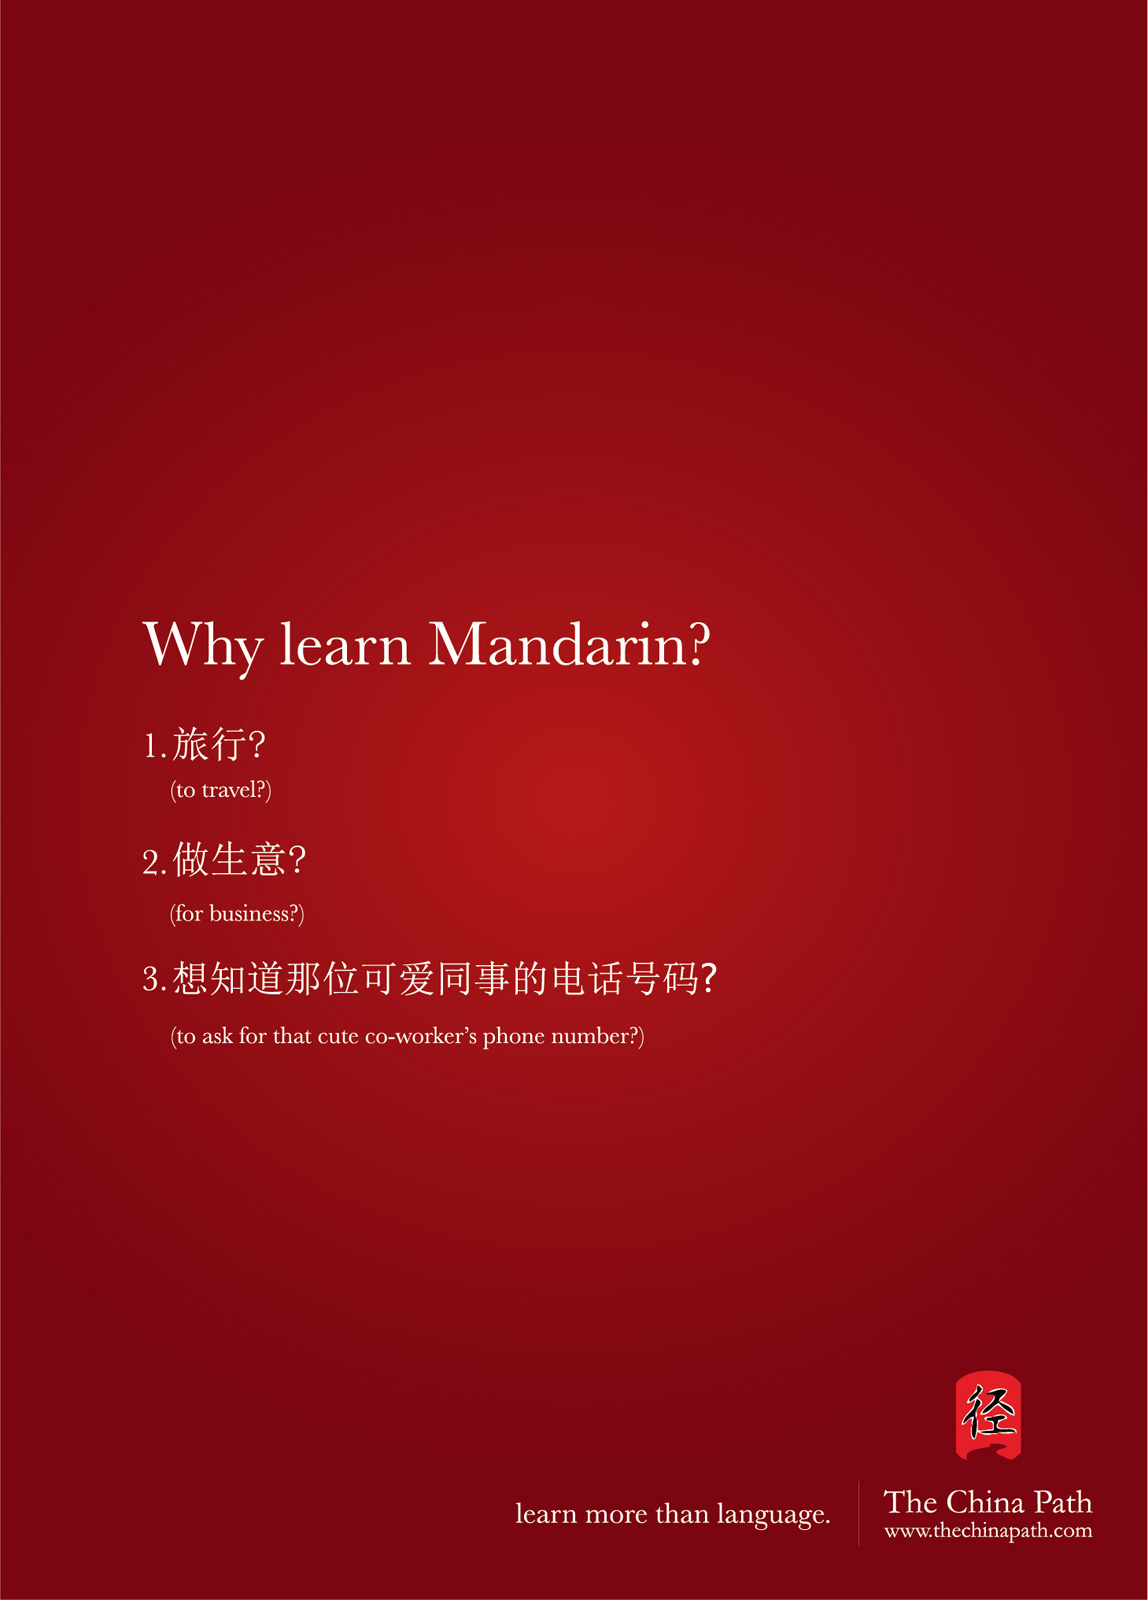 how to learn more than one language